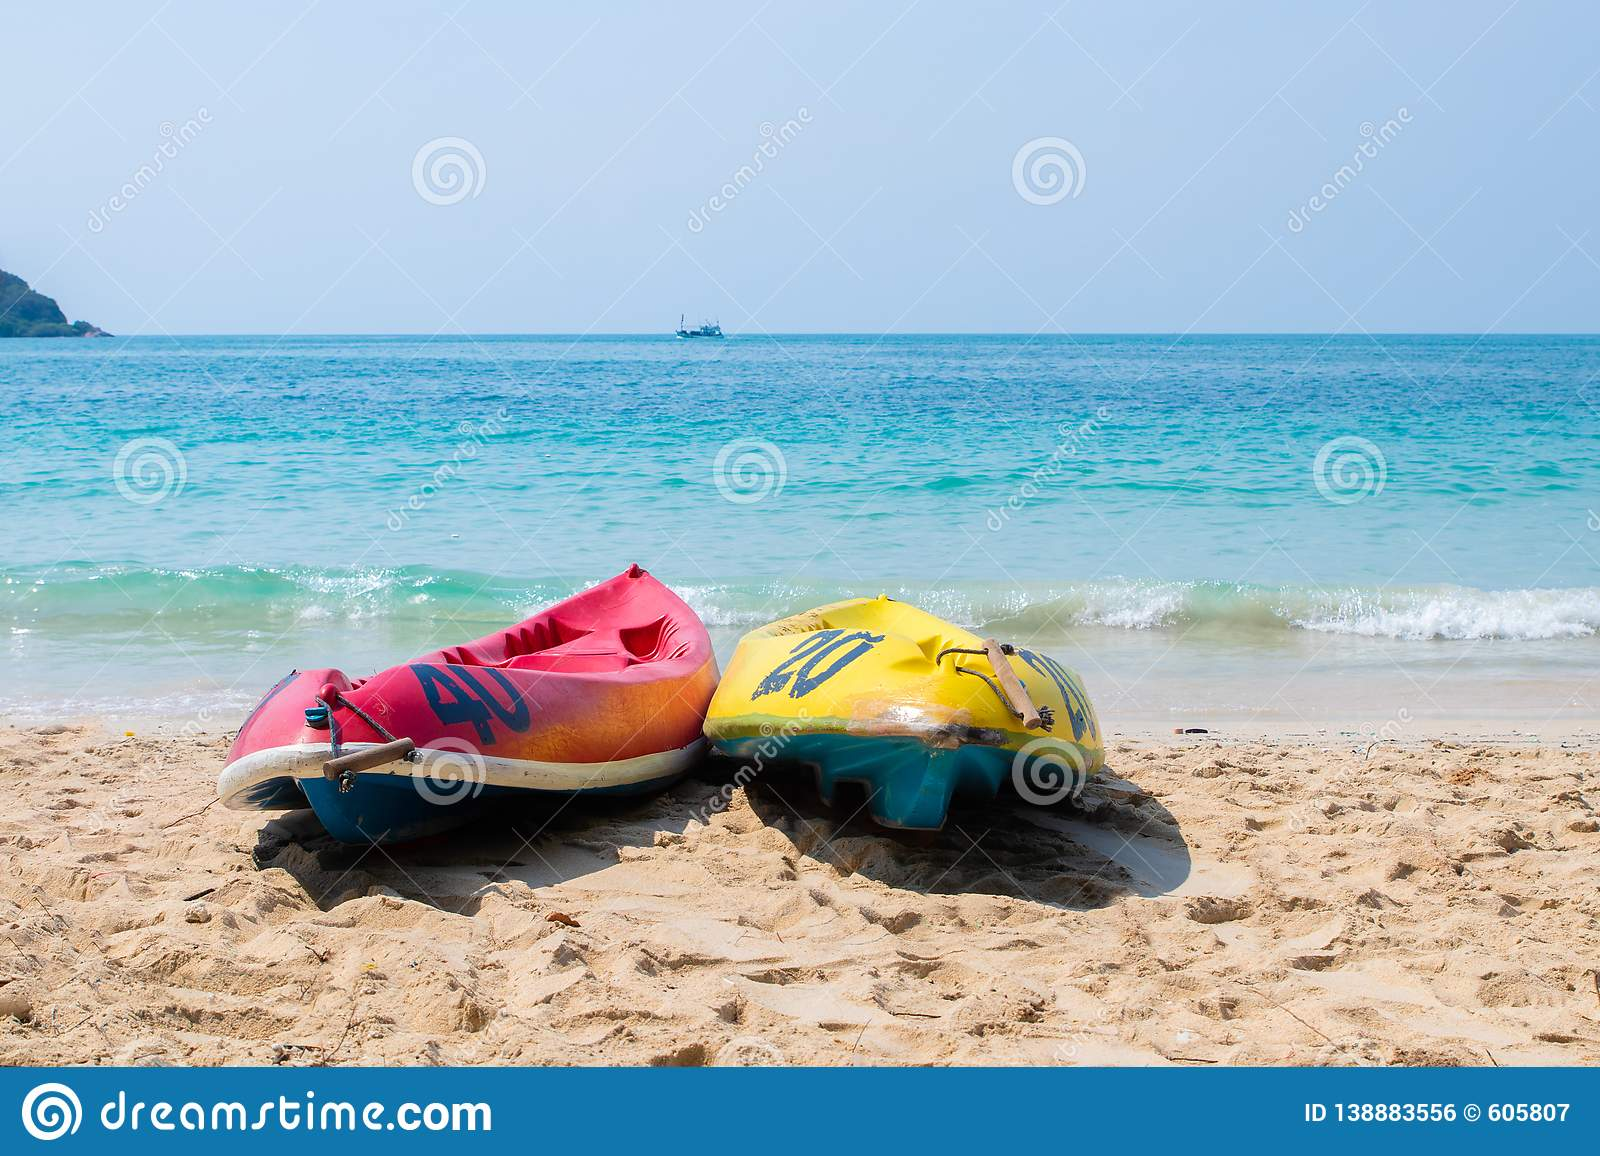 c45e4afbbc8 Yellow and blue kayaks on the beach on a sunny day. Sports summer hobby